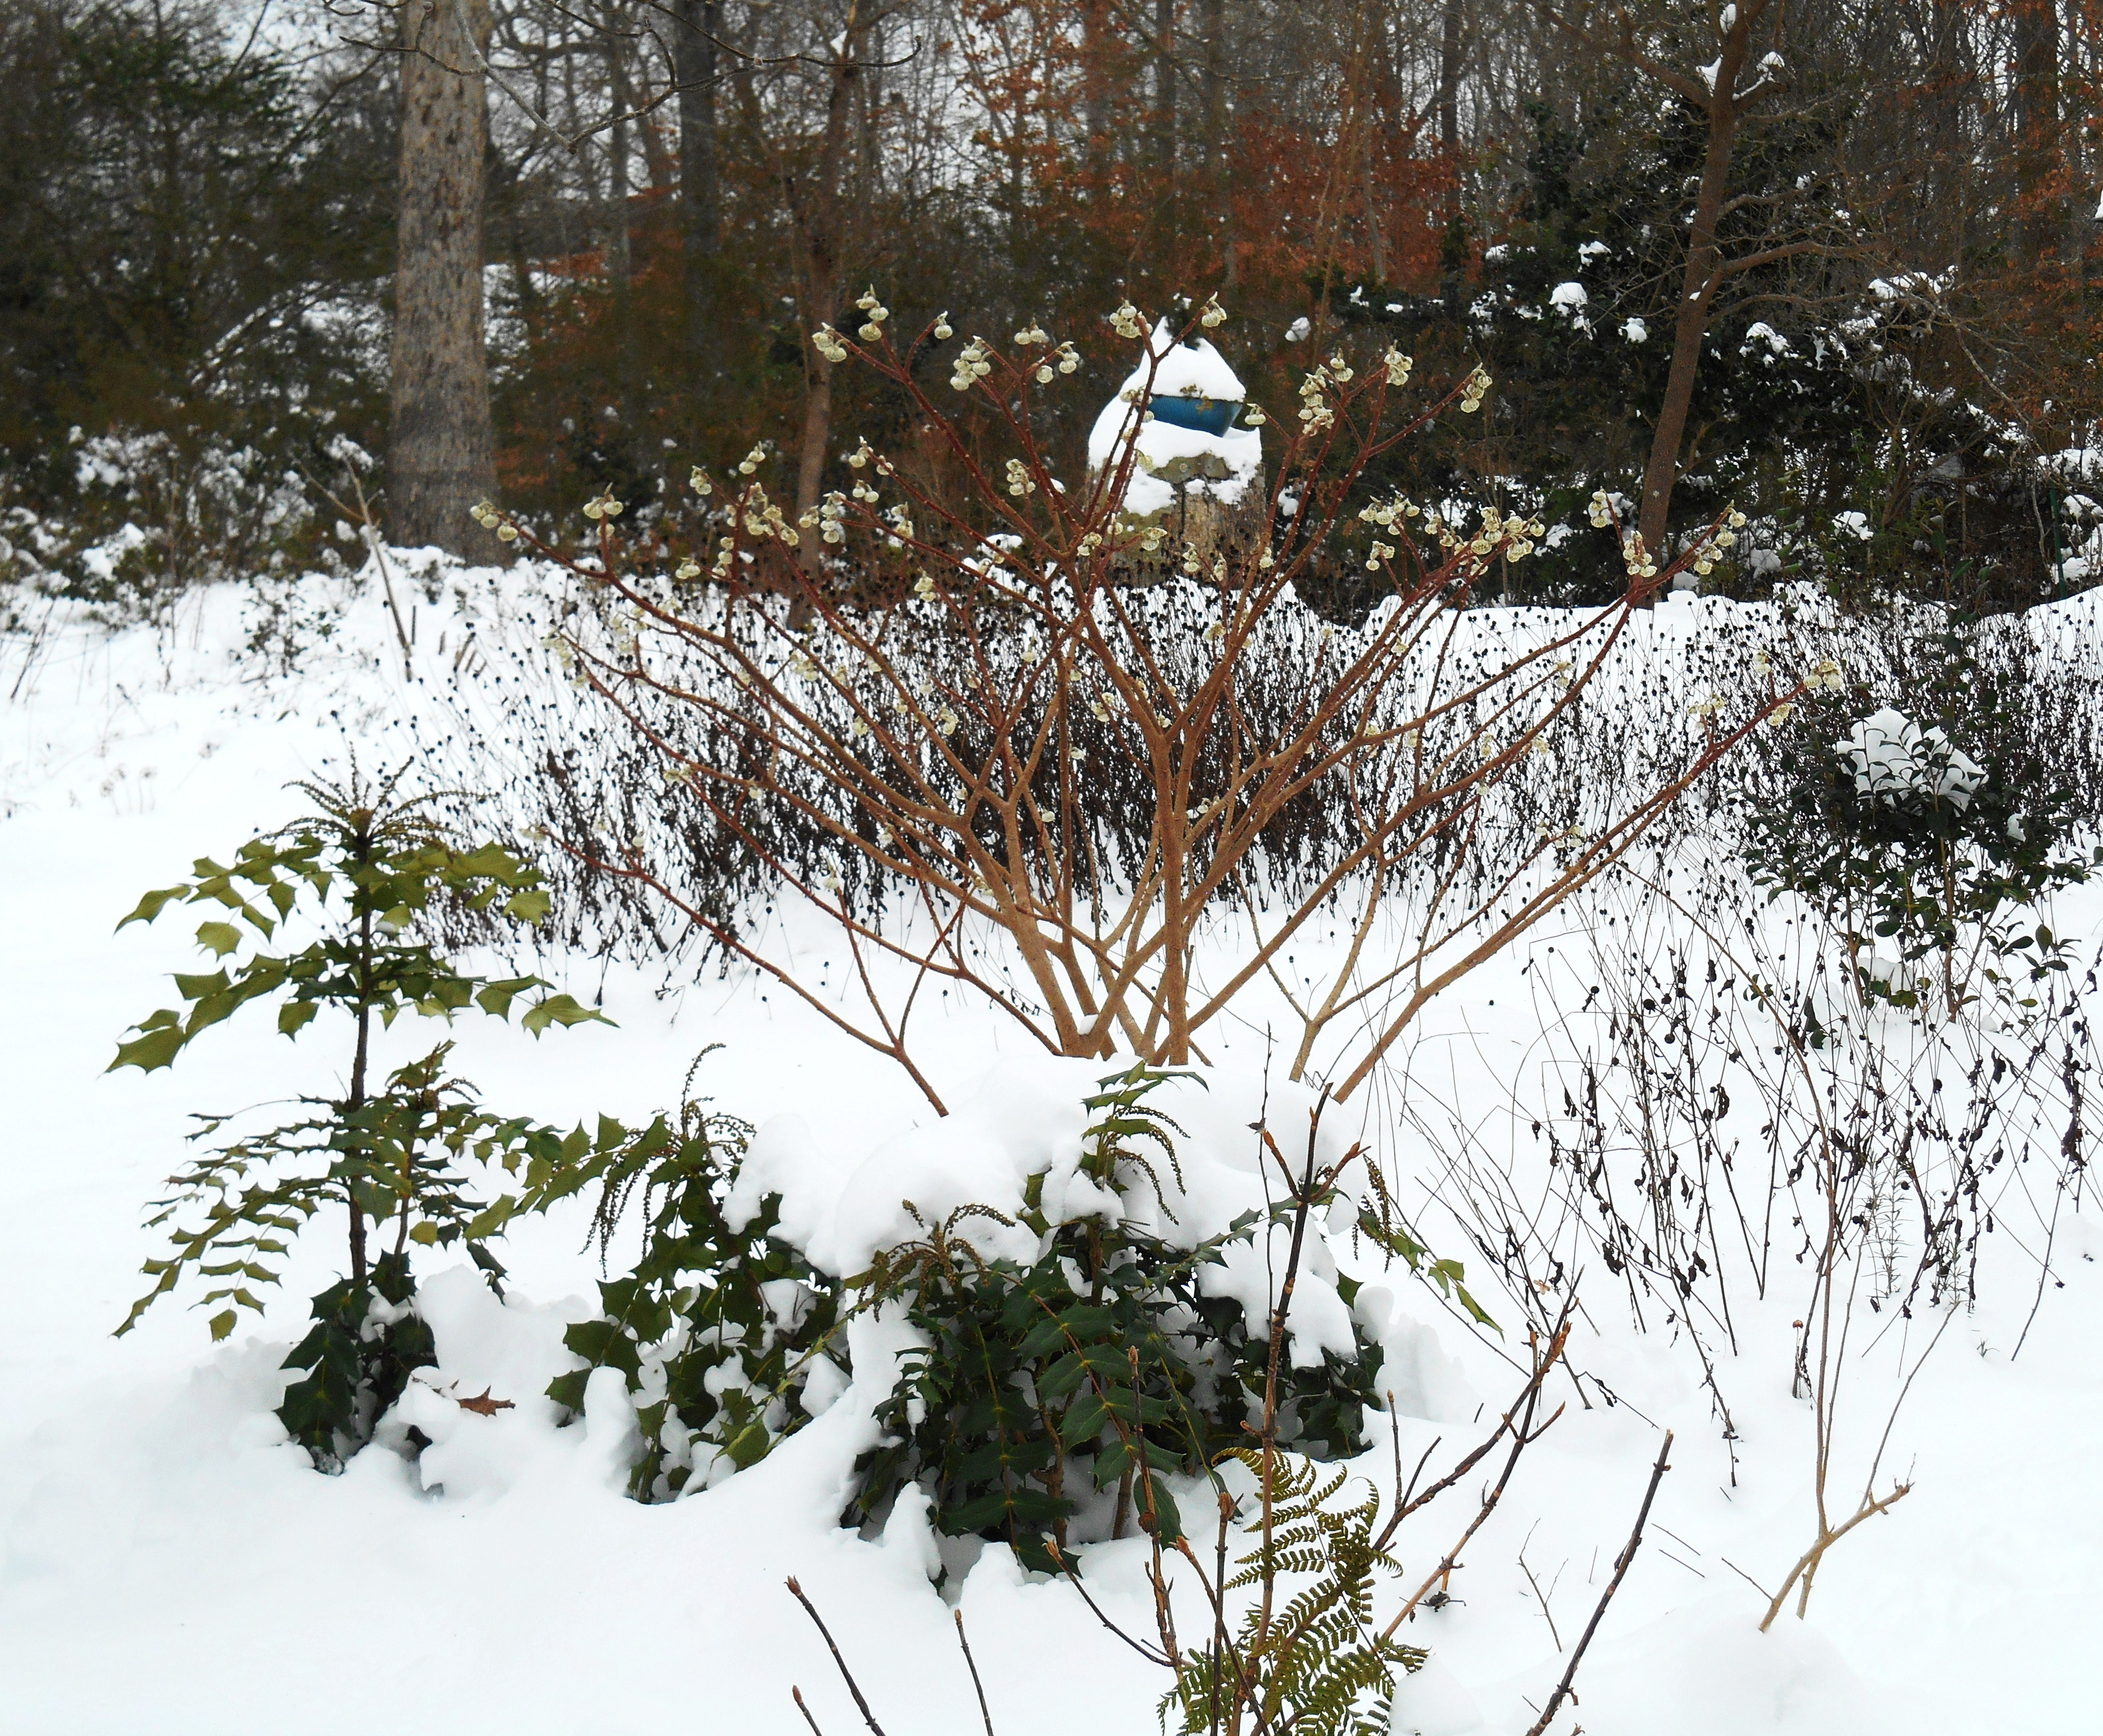 January 9, when we had more than 10 inches of snow in our garden.